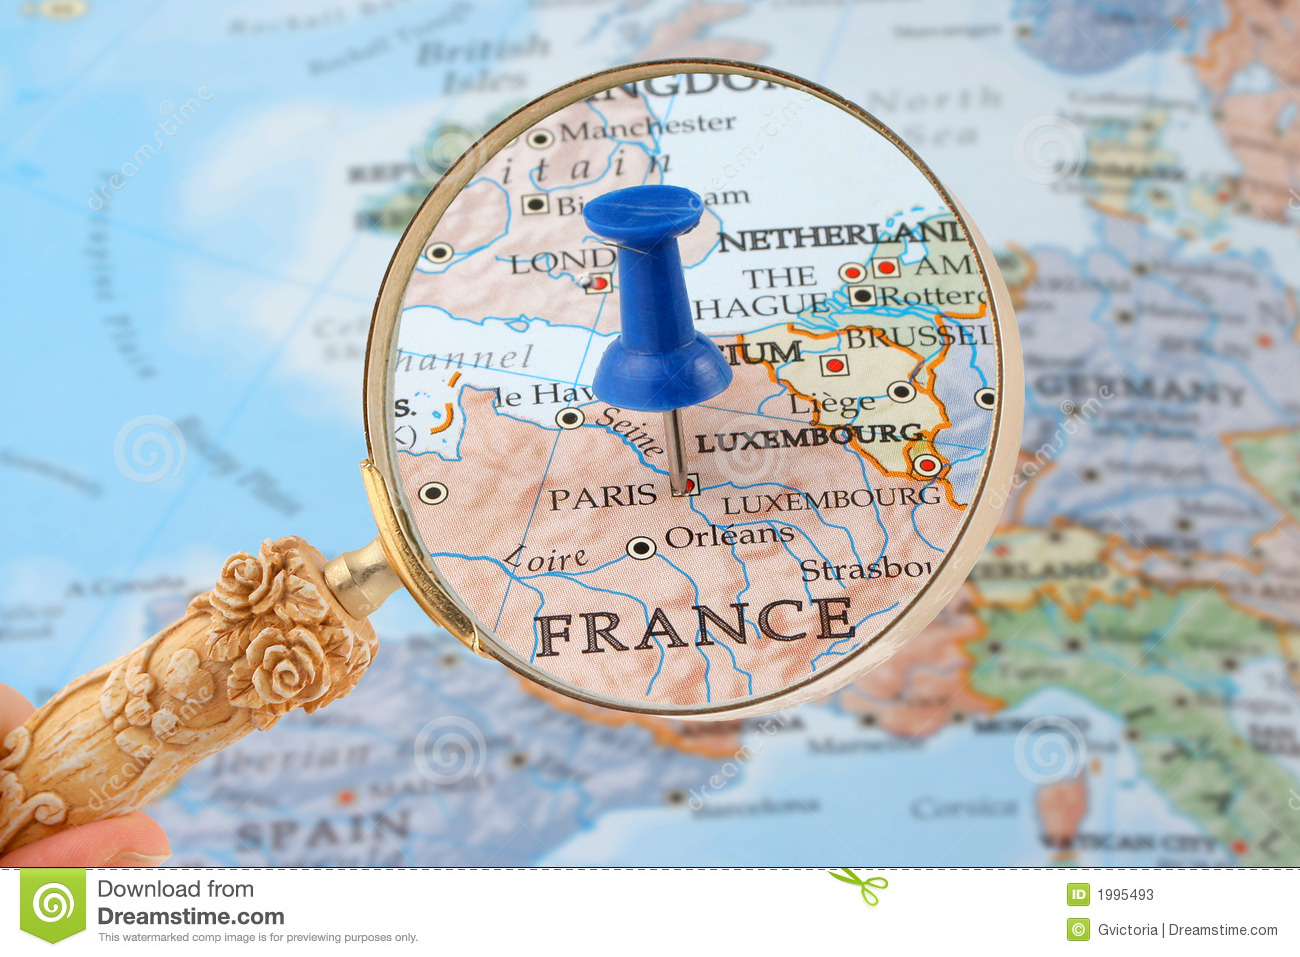 Magnifying glass over Paris, France map with destination tack.